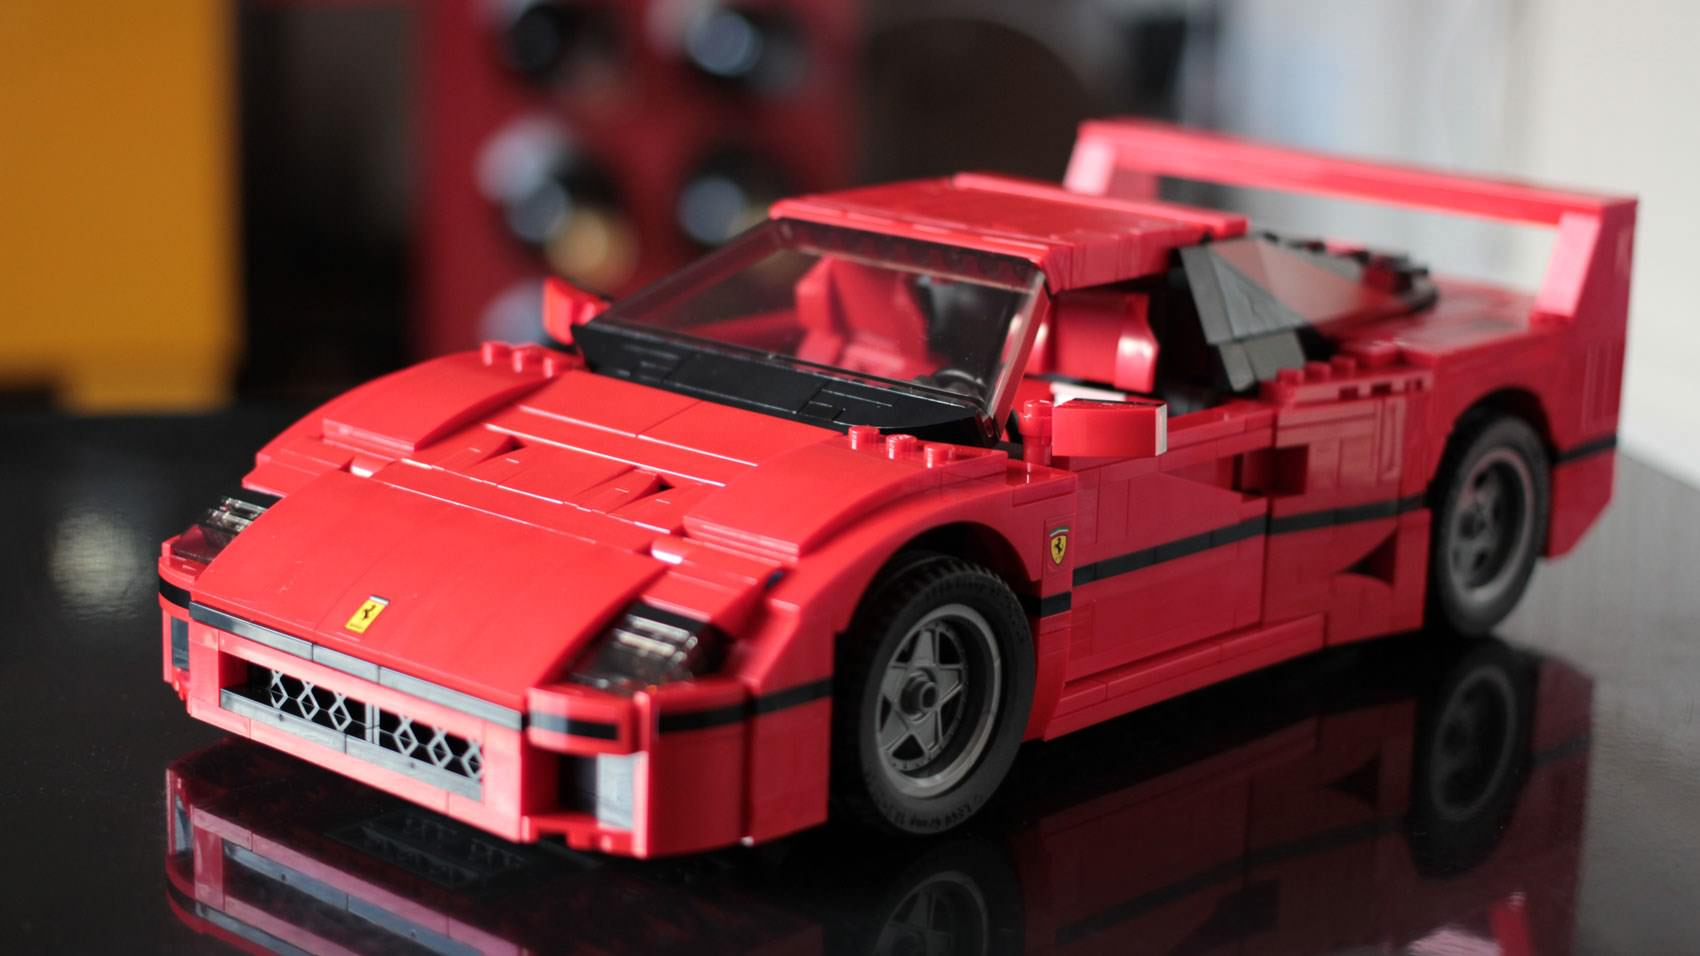 A red Ferrari built out of lego